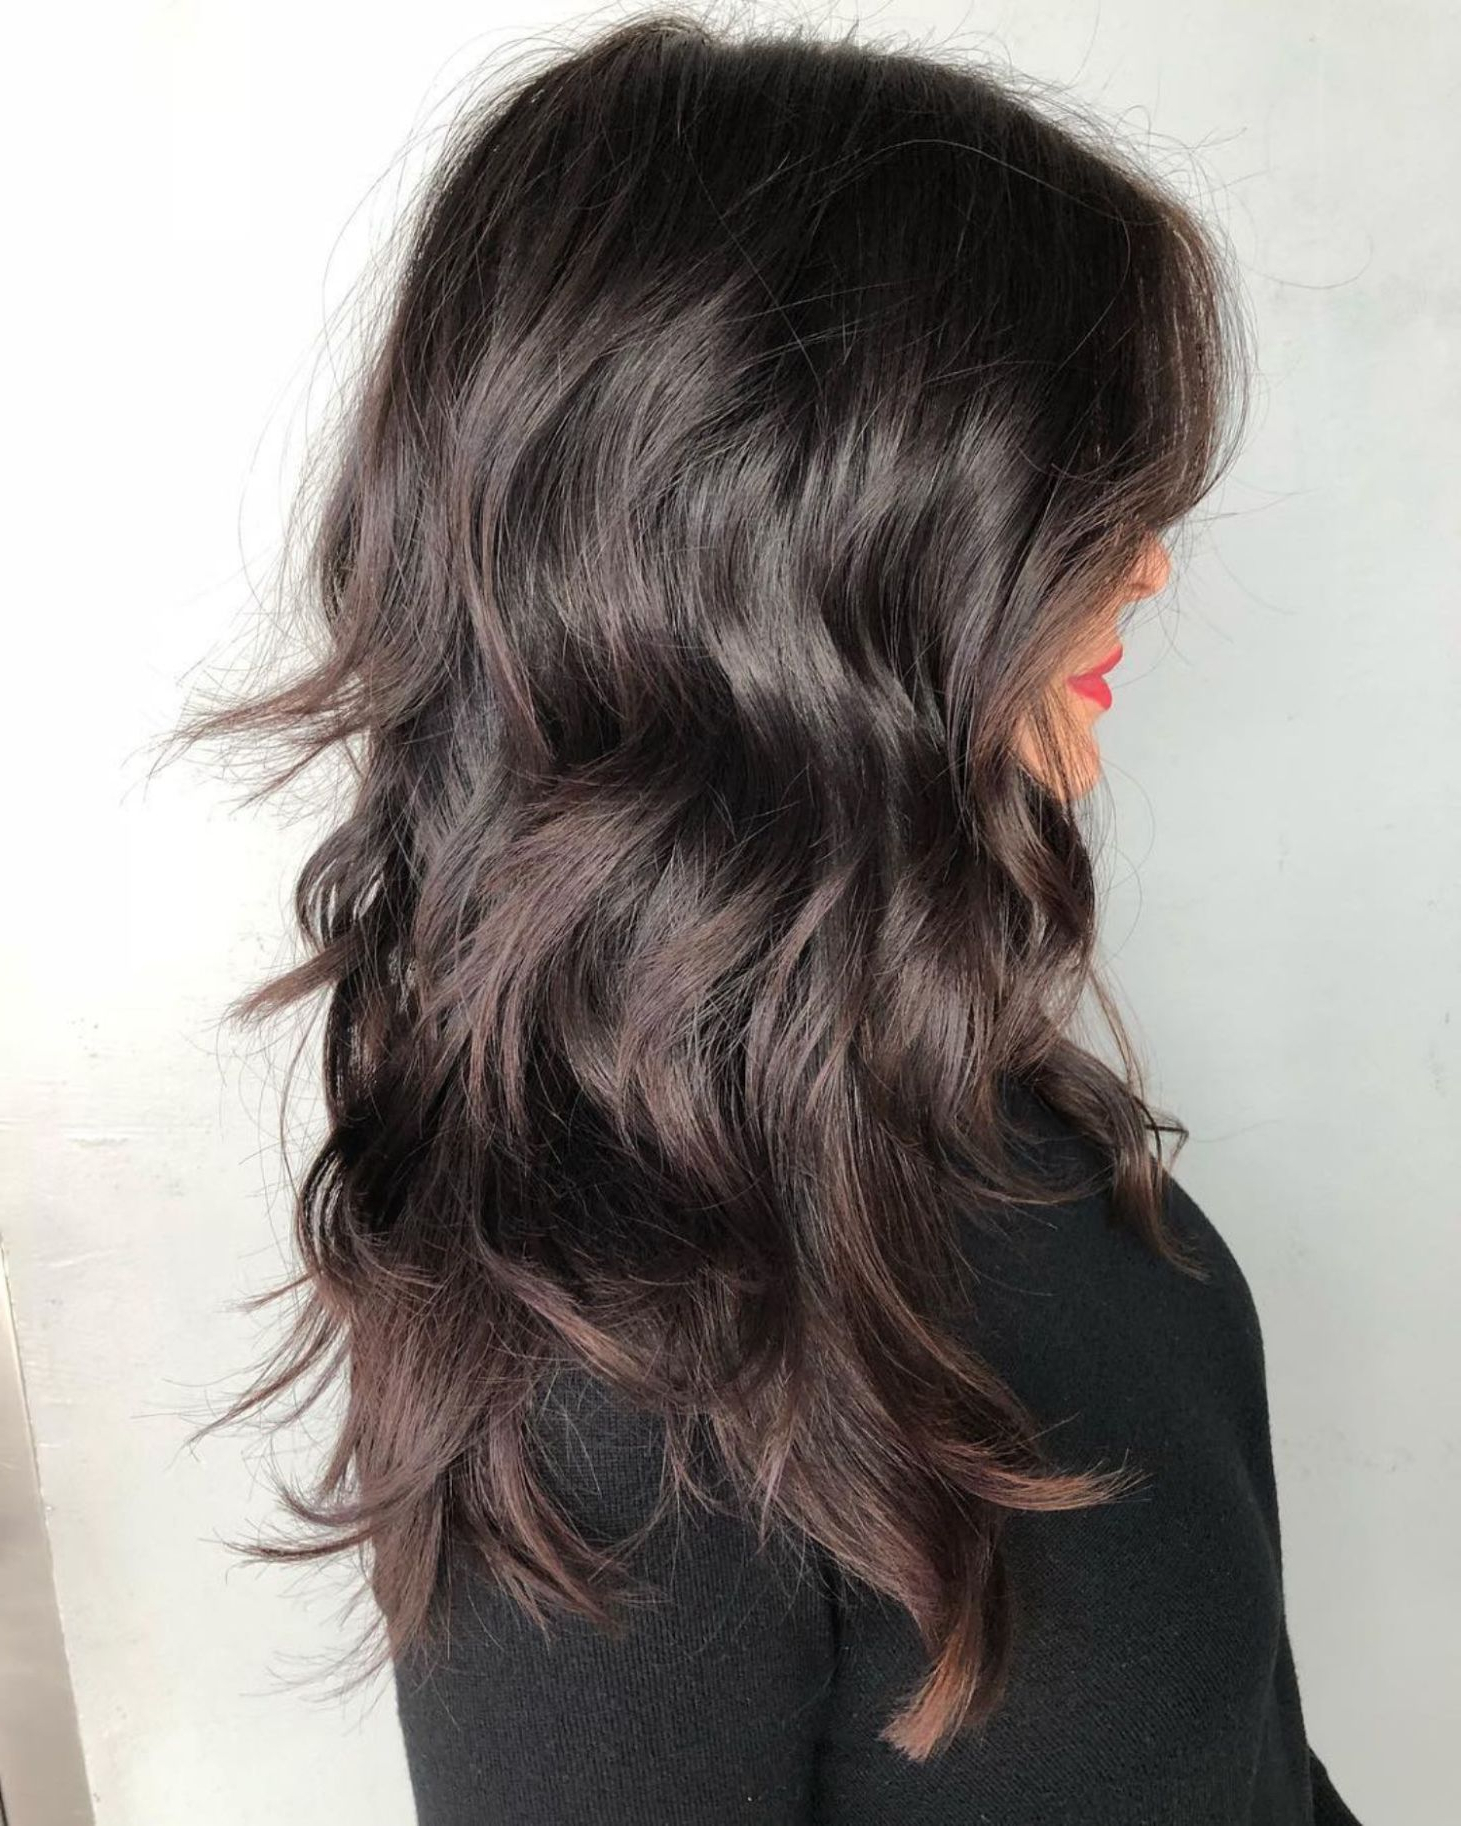 60 Lovely Long Shag Haircuts For Effortless Stylish Looks In Pertaining To Most Recent Frizzy Choppy Long Shag Hairstyles (View 6 of 20)